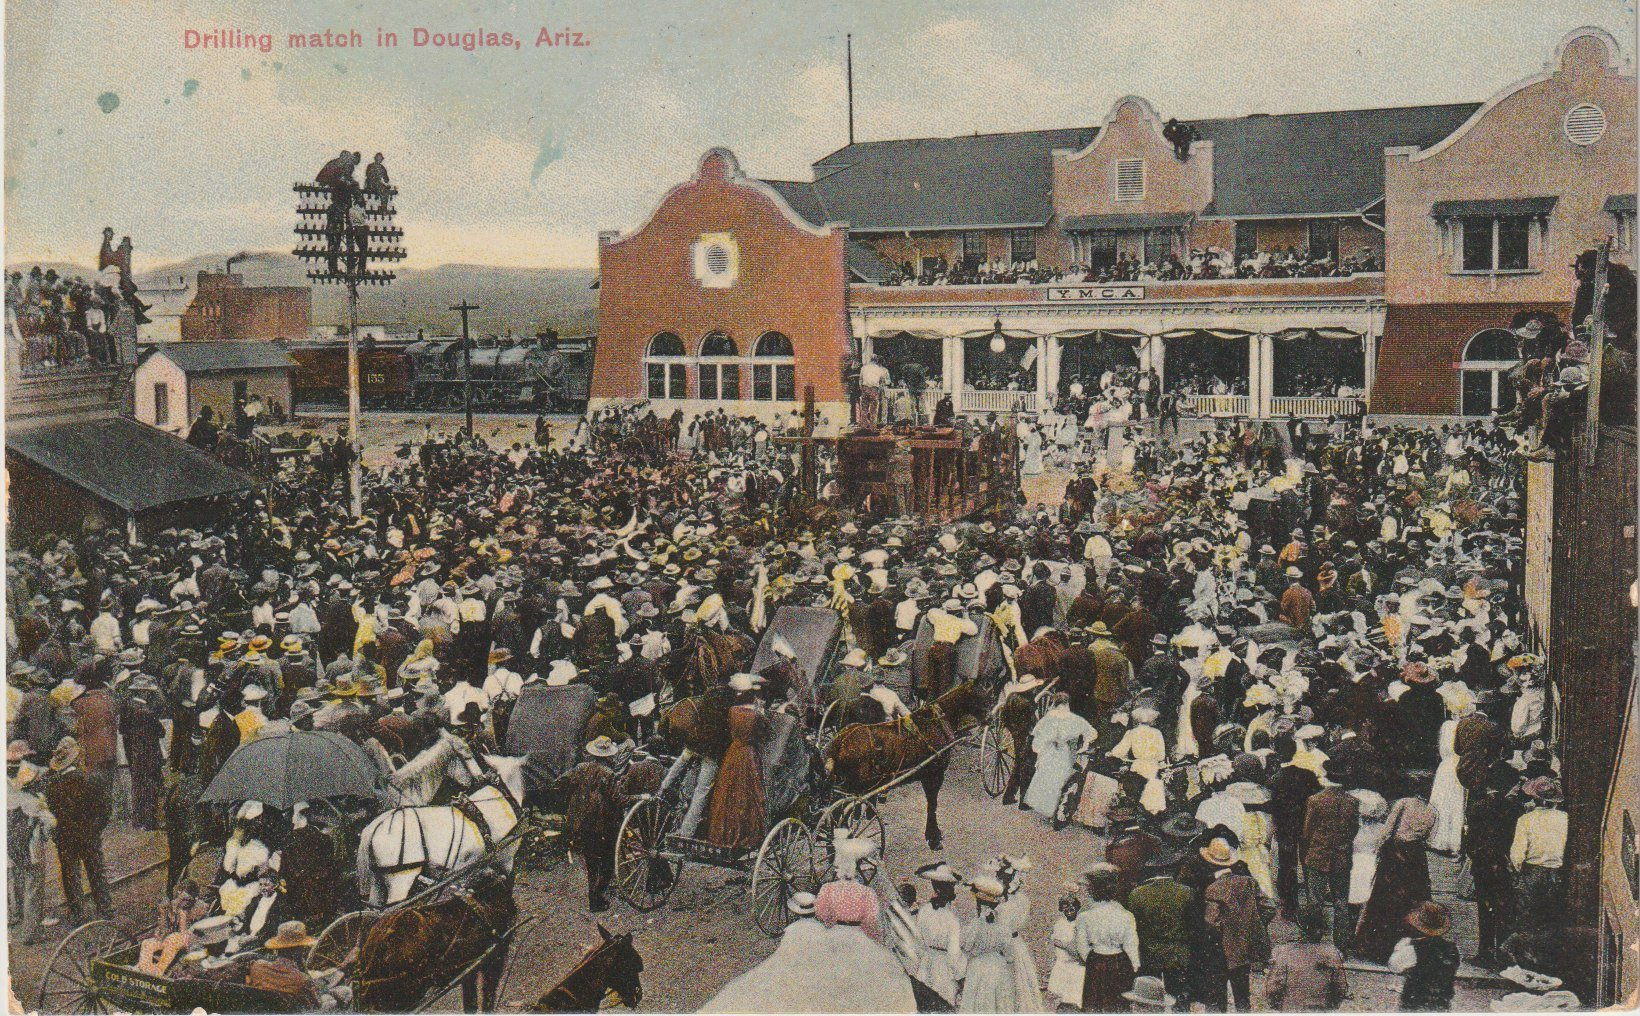 PANCHO VILLA. MINERS AND MISS DUPONT. AND THE YMCA.